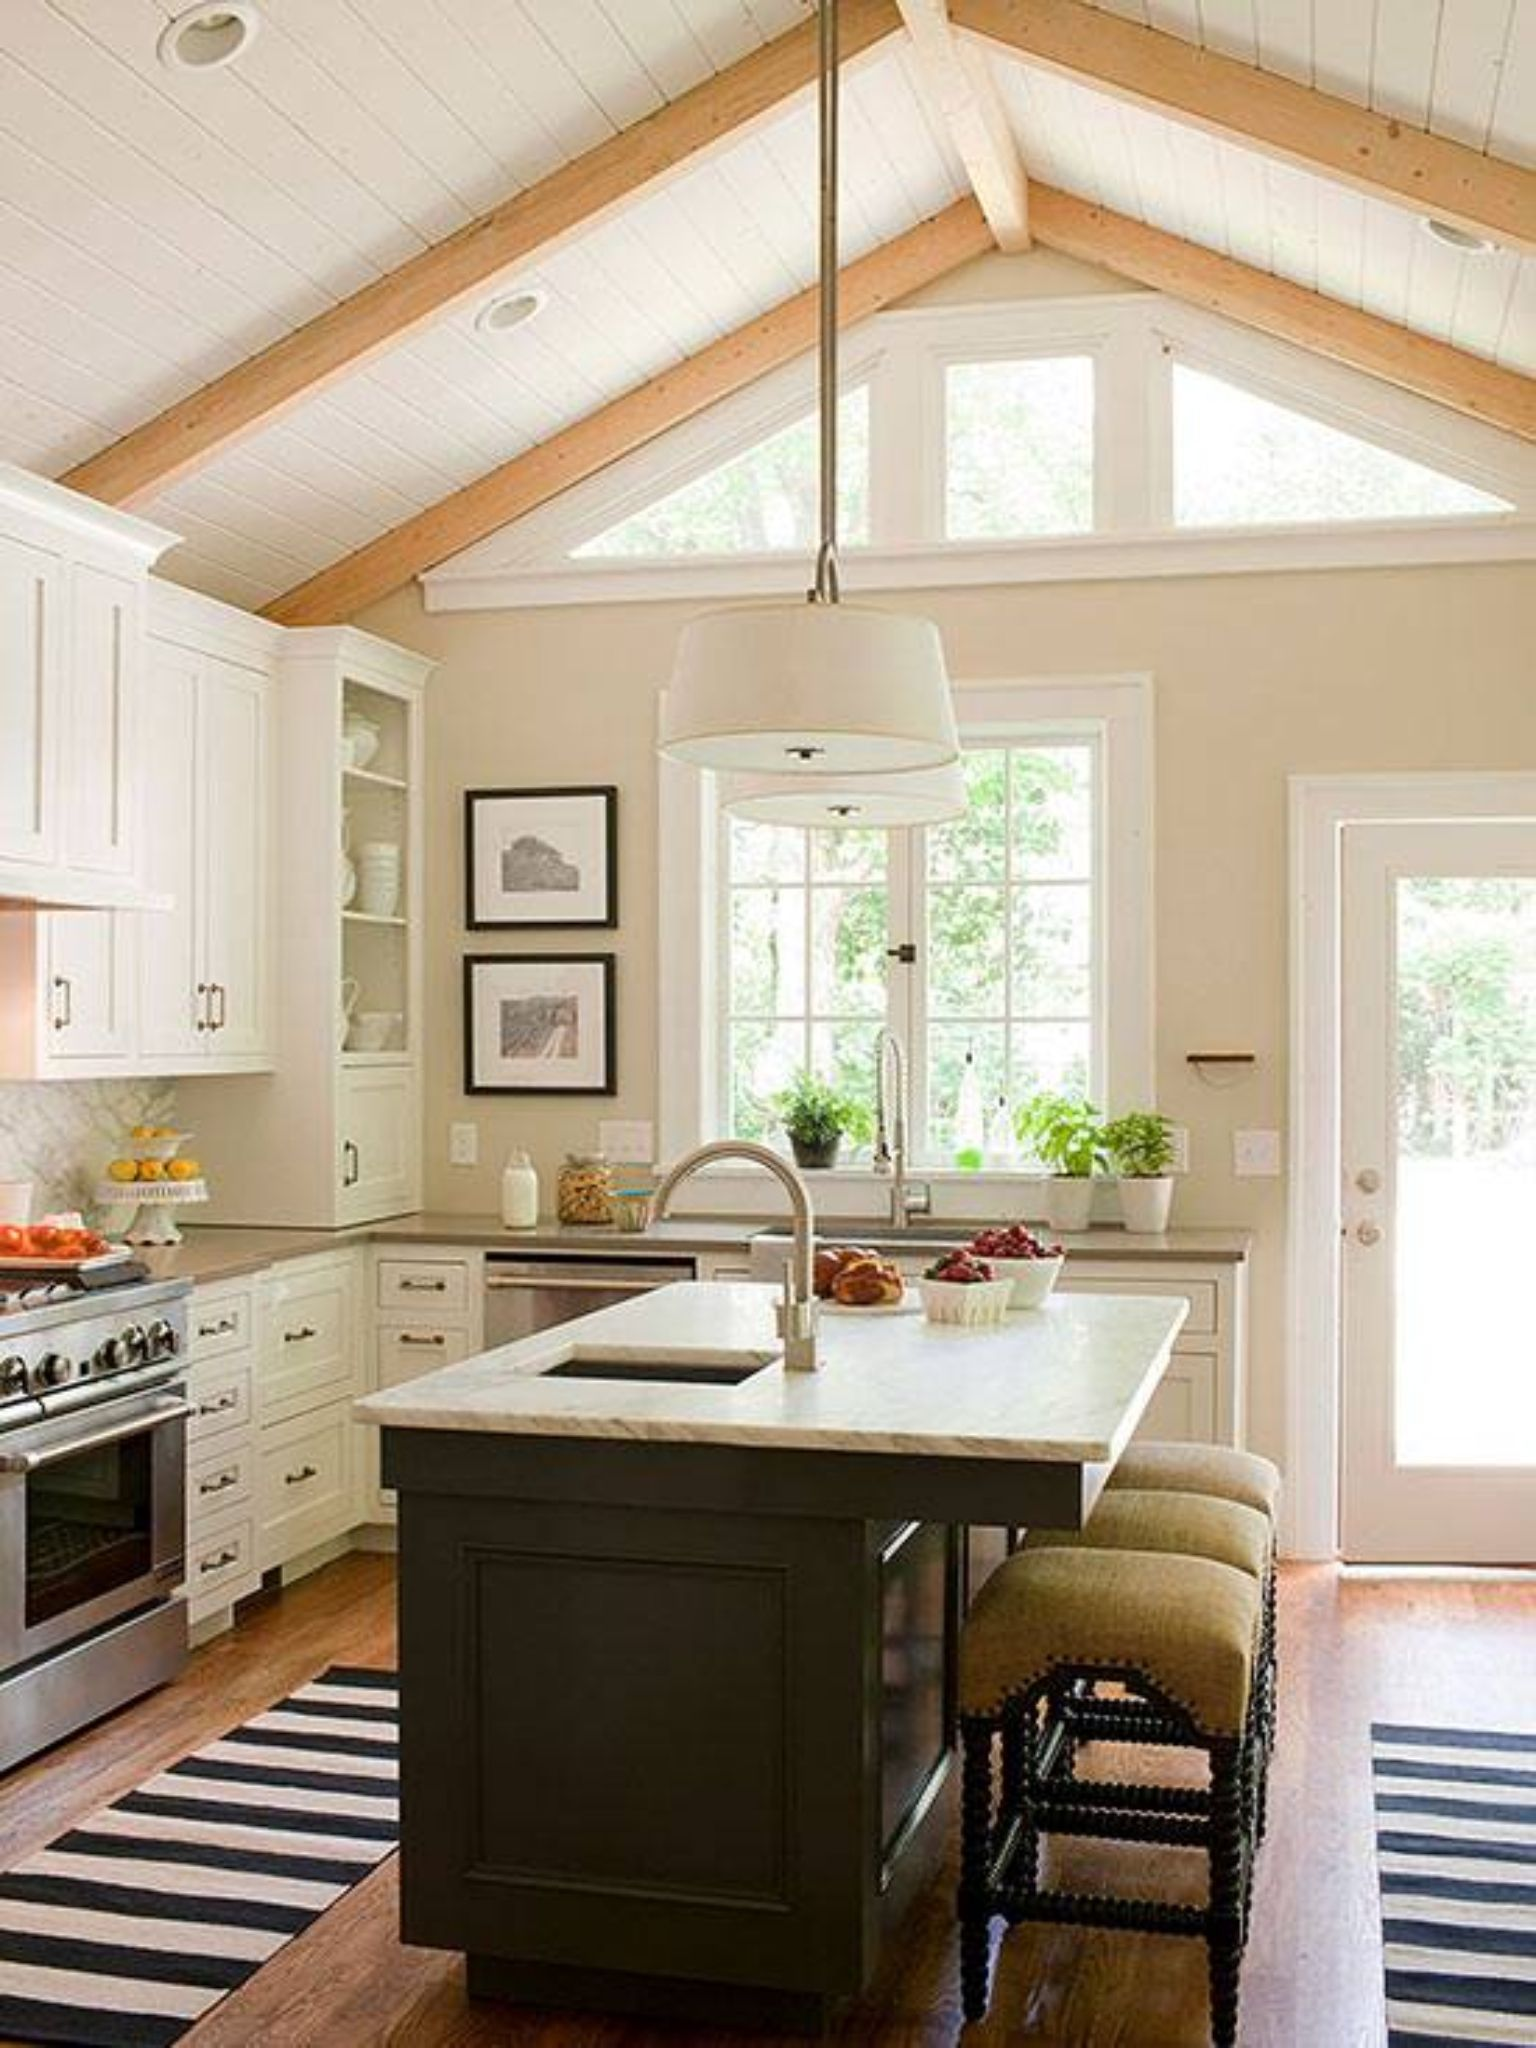 Kitchen great natural light open and island with chairs